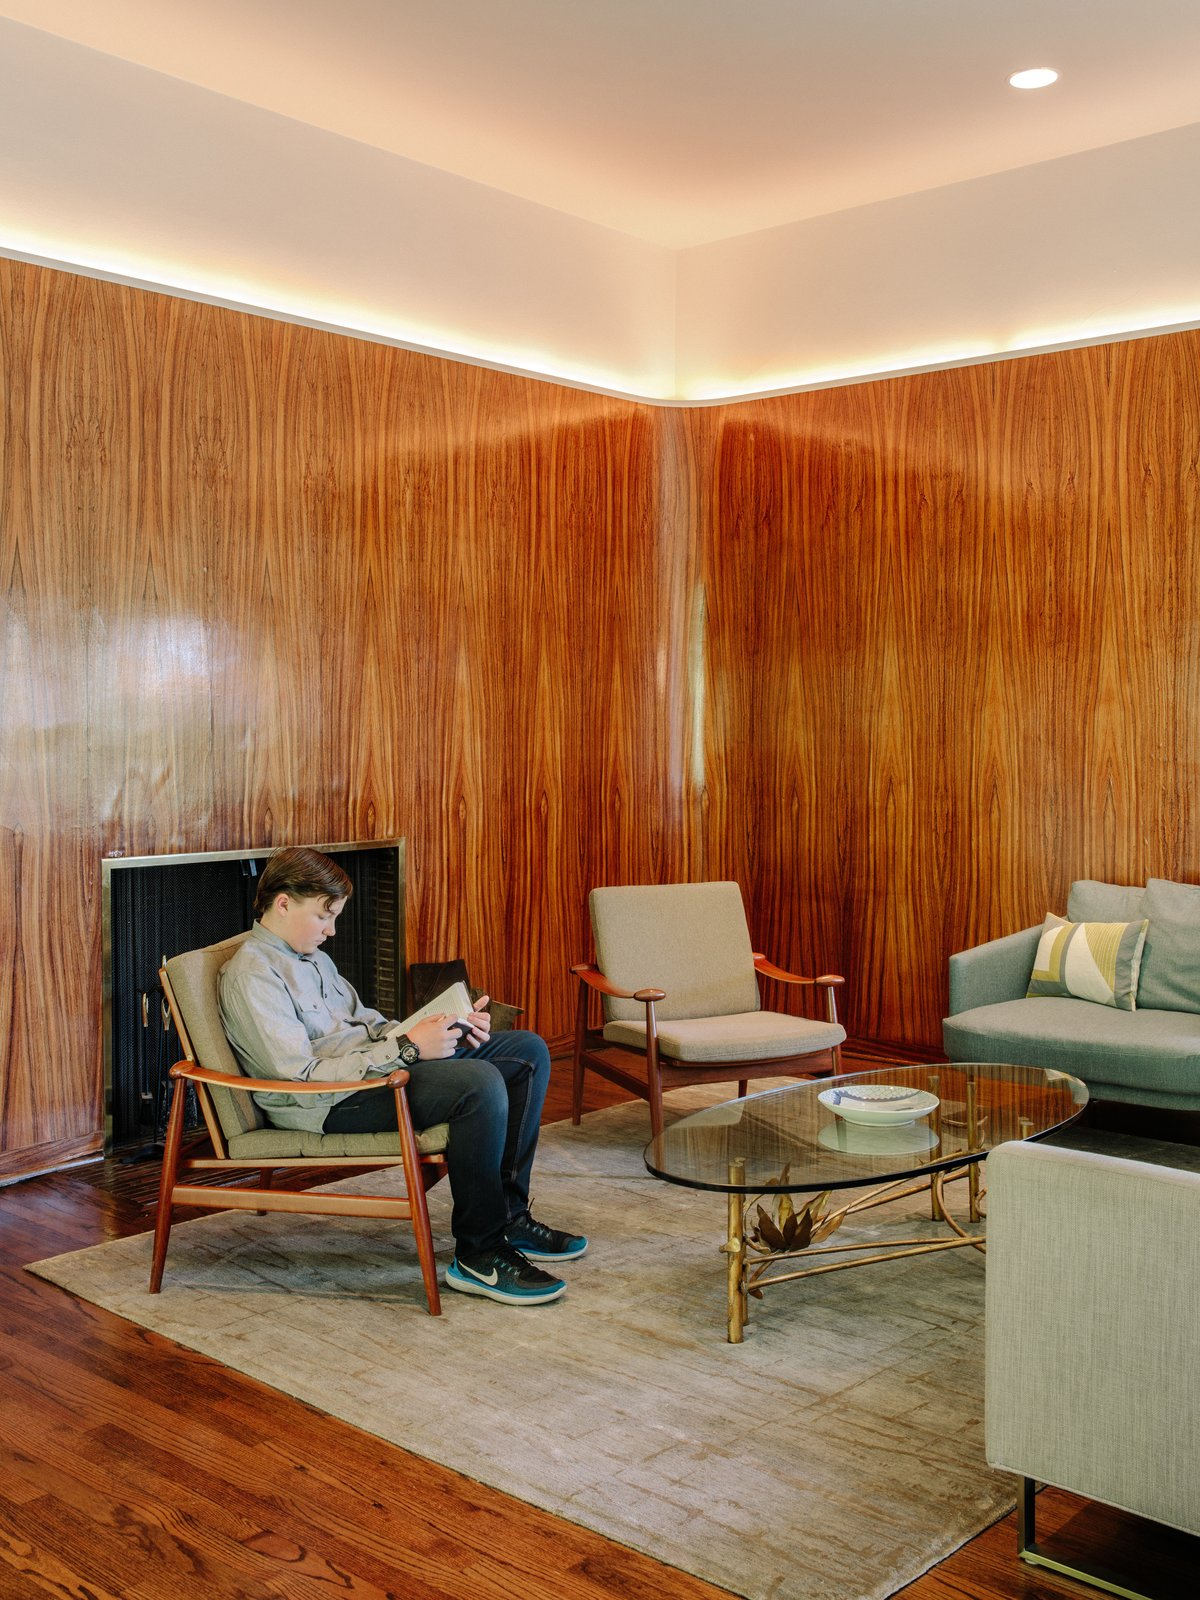 Living Room, Medium Hardwood Floor, Recessed Lighting, Rug Floor, Chair, Standard Layout Fireplace, Sofa, and Coffee Tables In the hearth, more zebrawood paneling is accented by LED strips.  Photo 5 of 15 in Nearly 80 Years Later, an Architect Rescues a Japanese-Inspired  Masterwork Designed by His Father